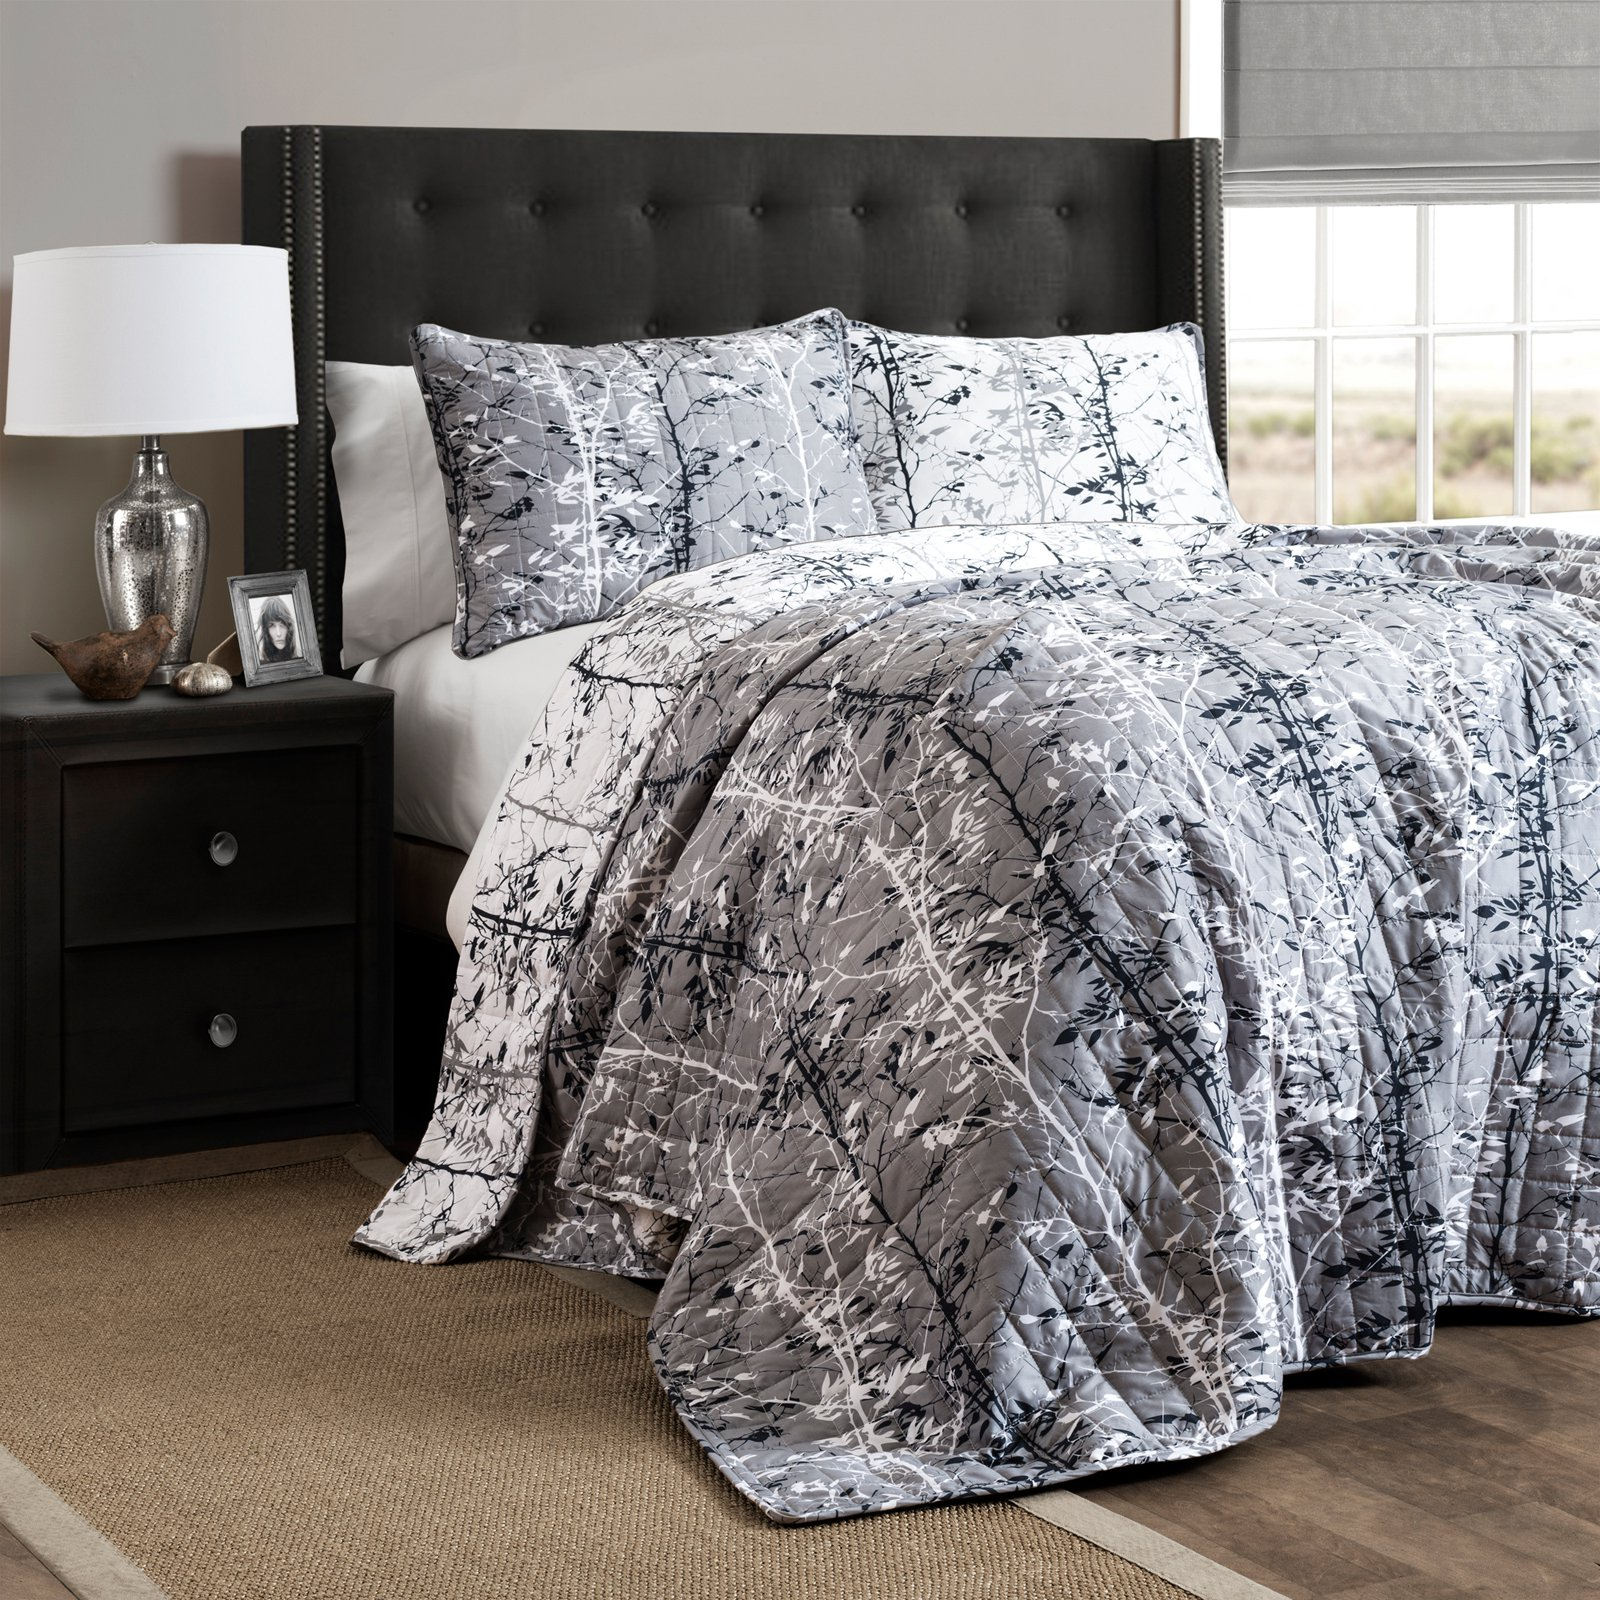 Forest 3 Piece Quilt Set by Lush Decor